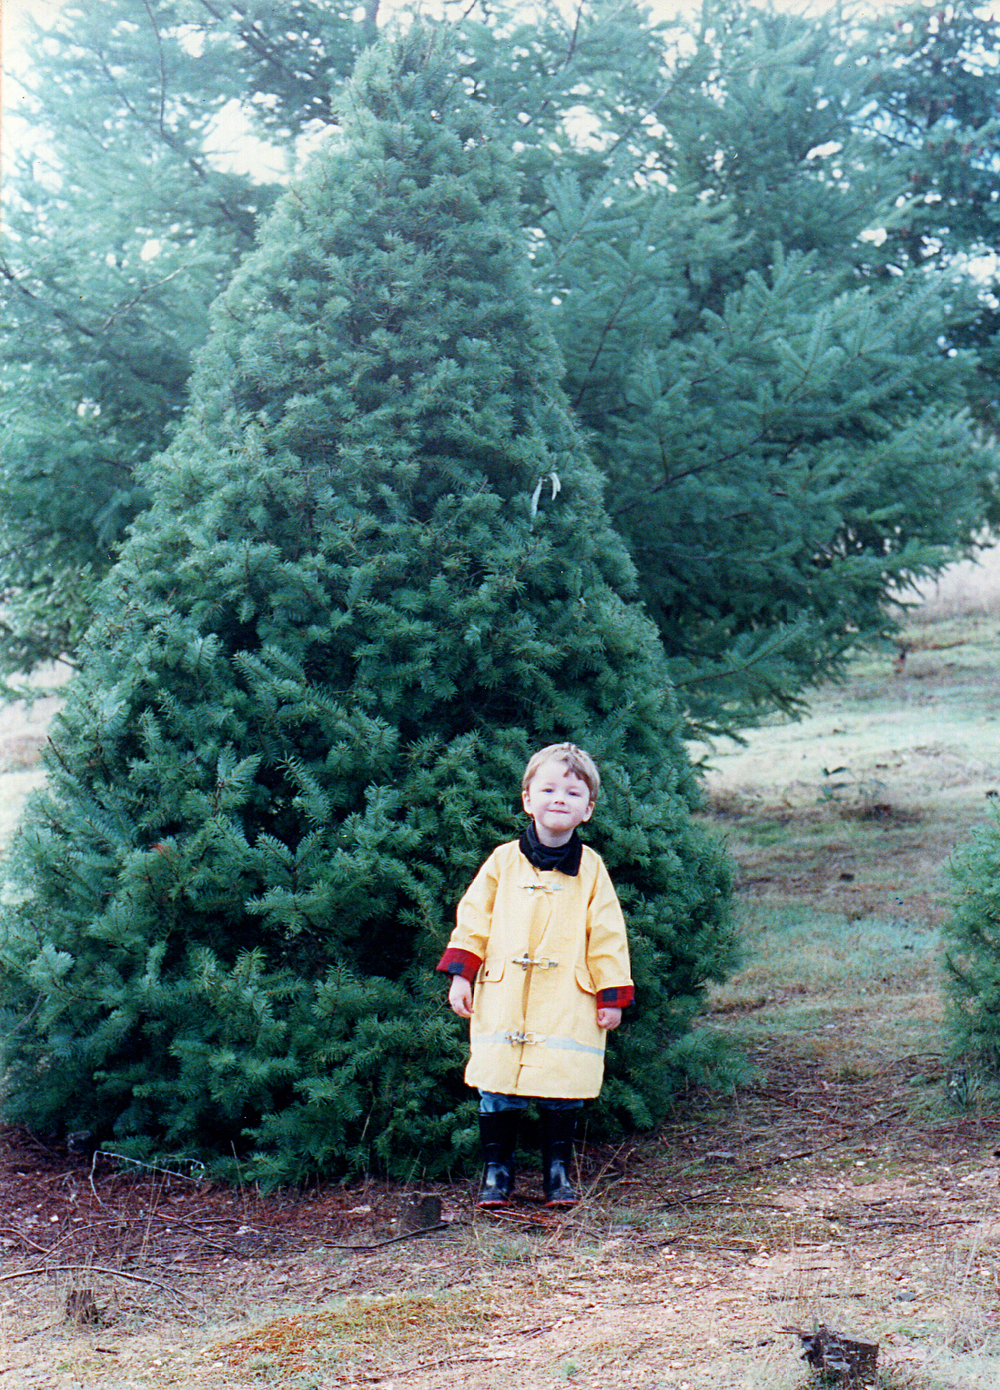 Little Henry, big tree. How the Little Fellows do slip away from us!